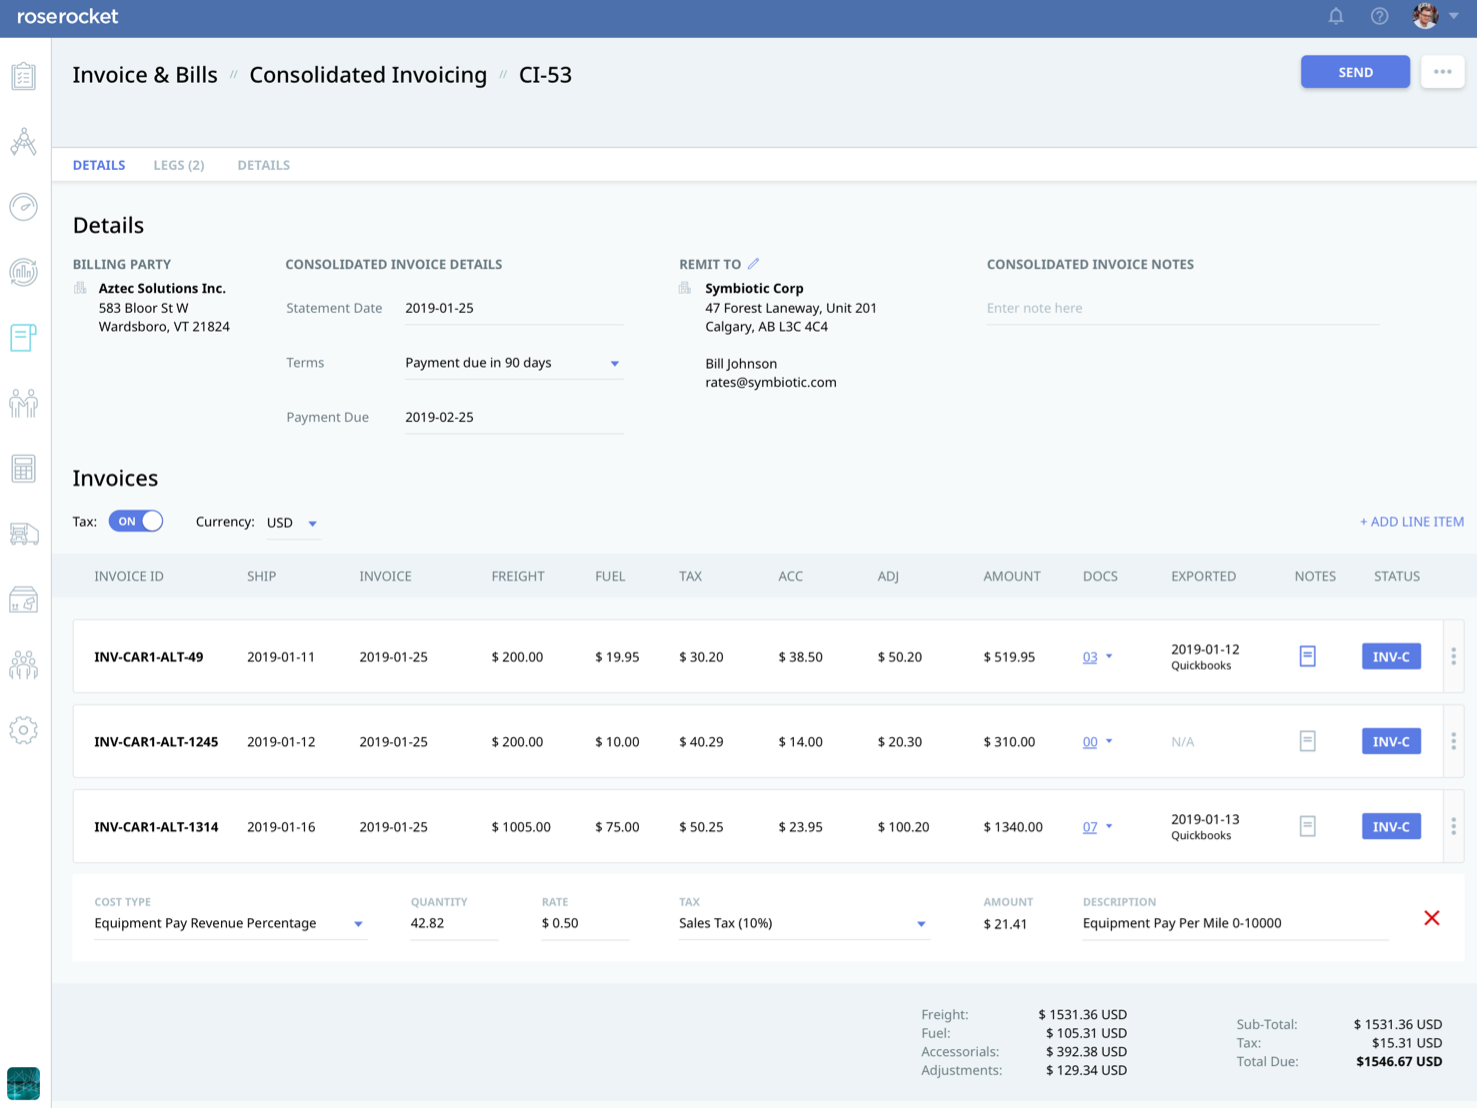 Rose Rocket Software - Send consolidated invoices